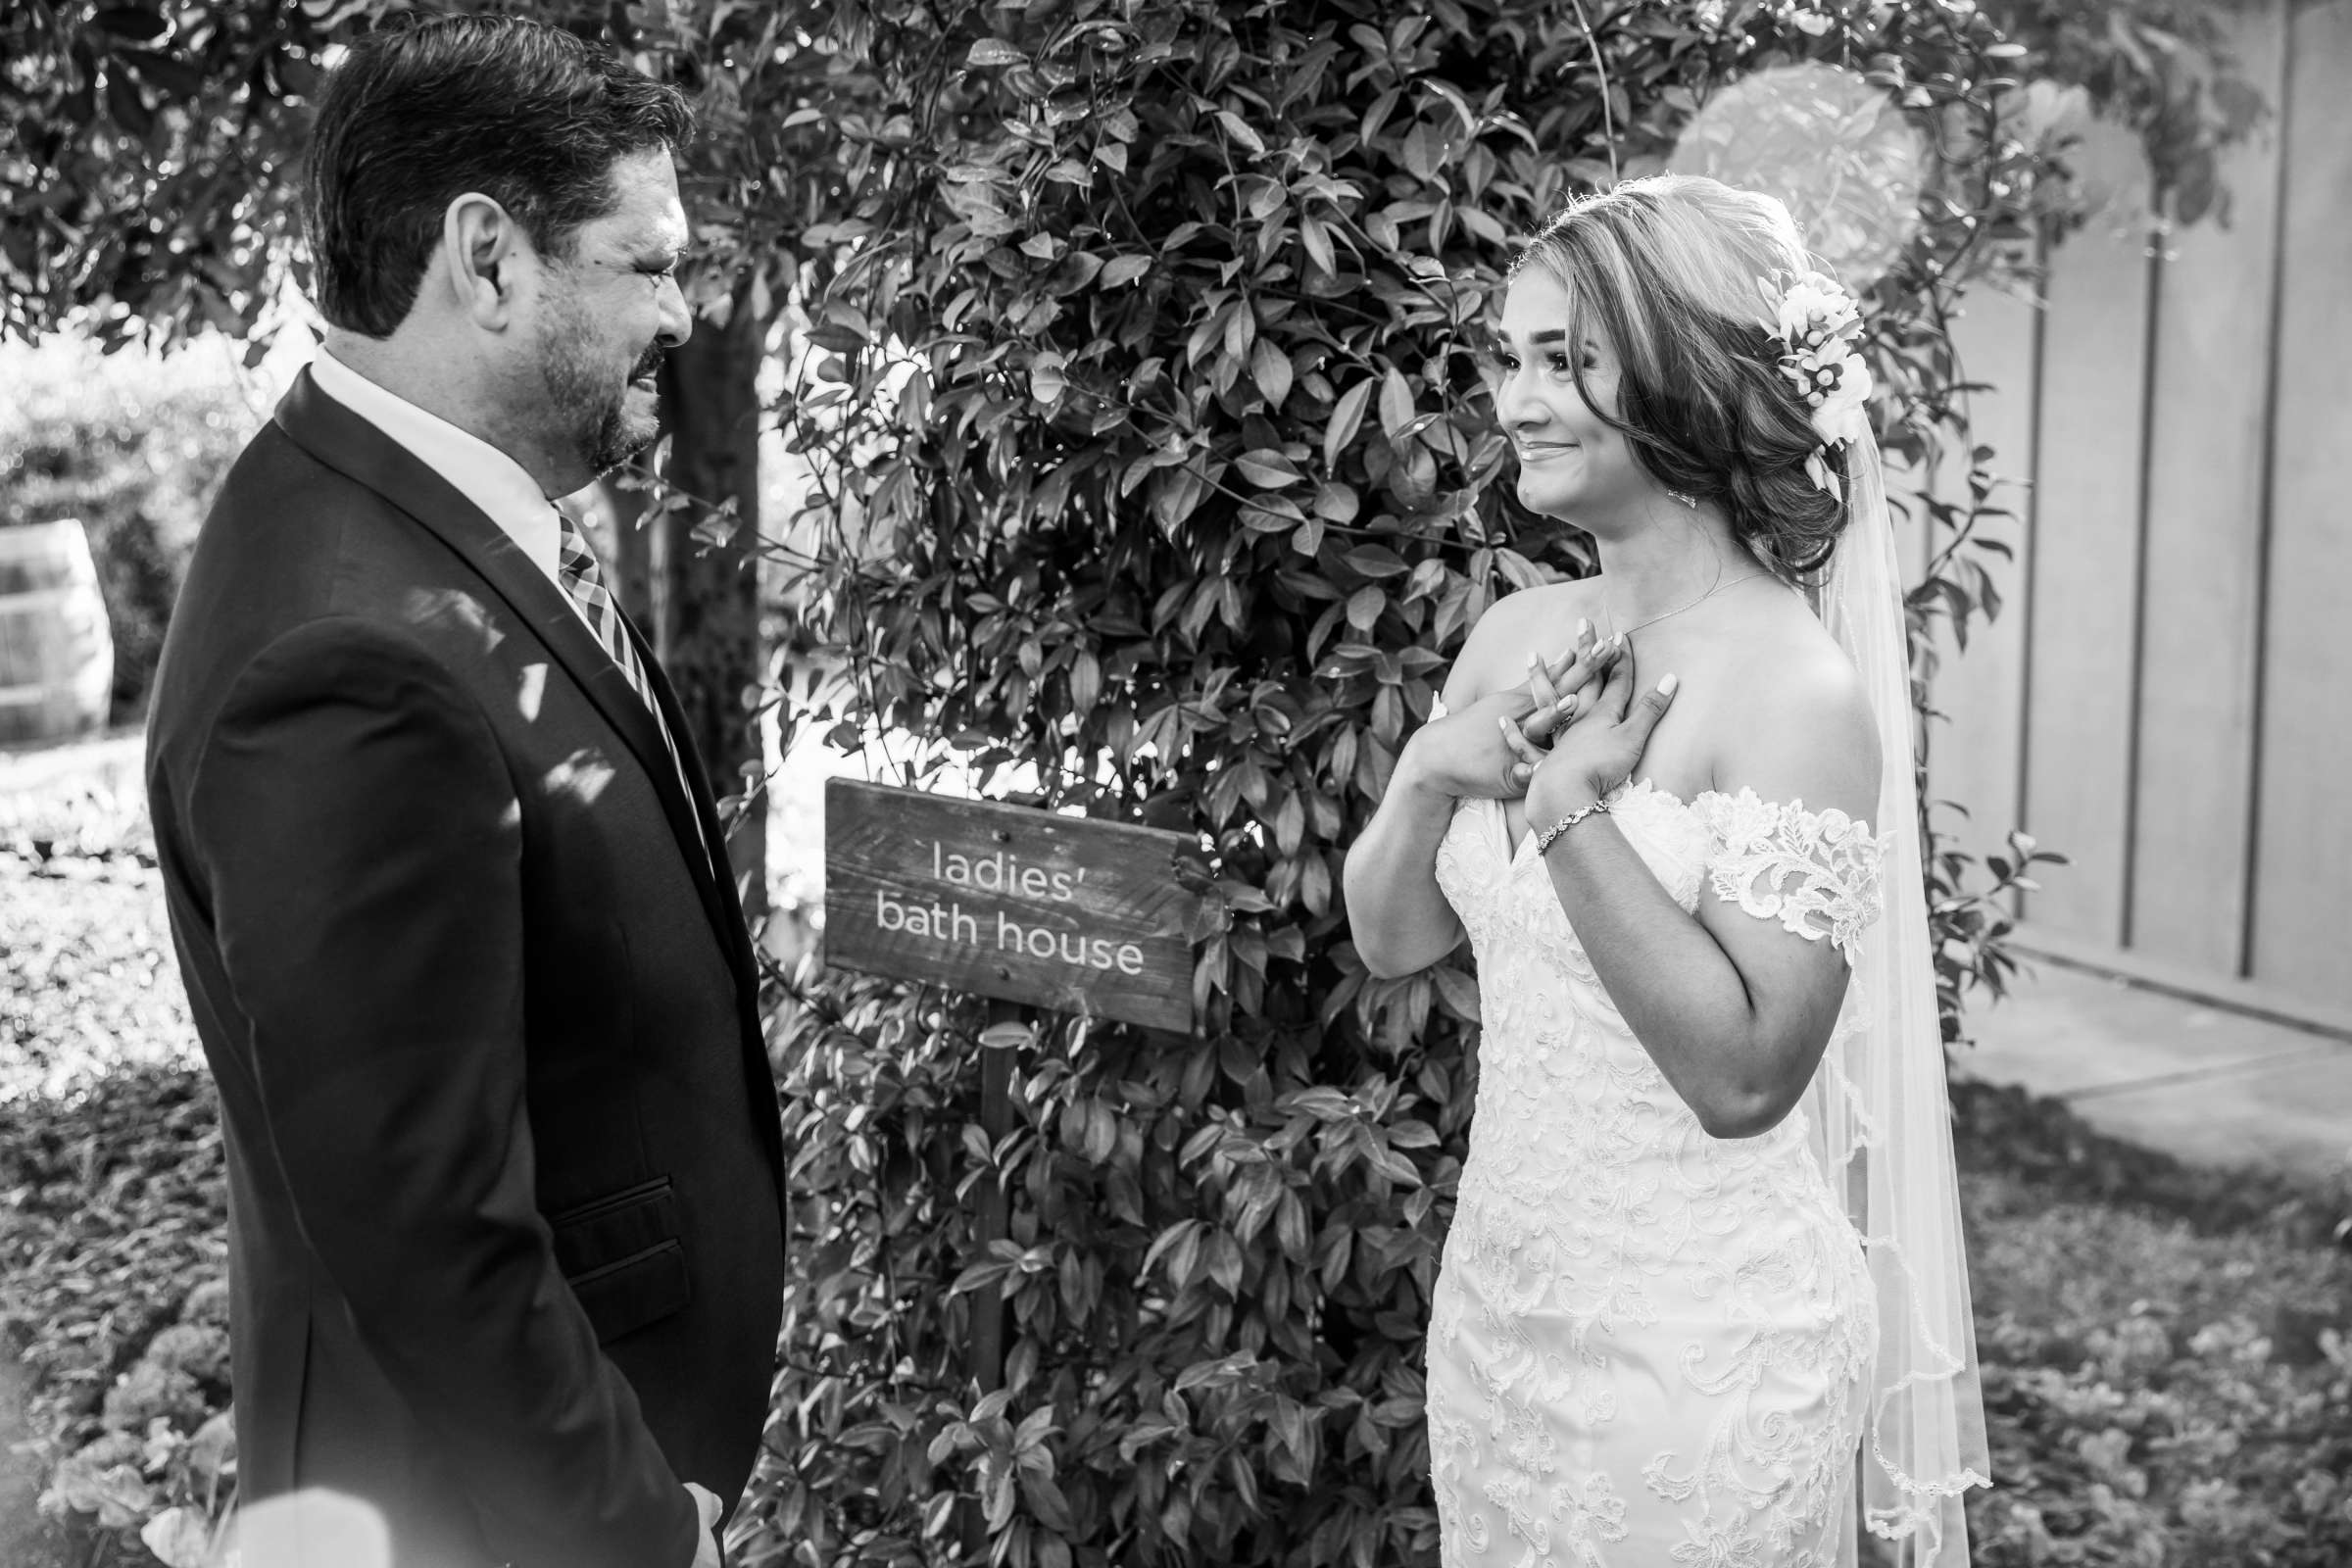 Ethereal Gardens Wedding, Danielle and Ben Wedding Photo #18 by True Photography